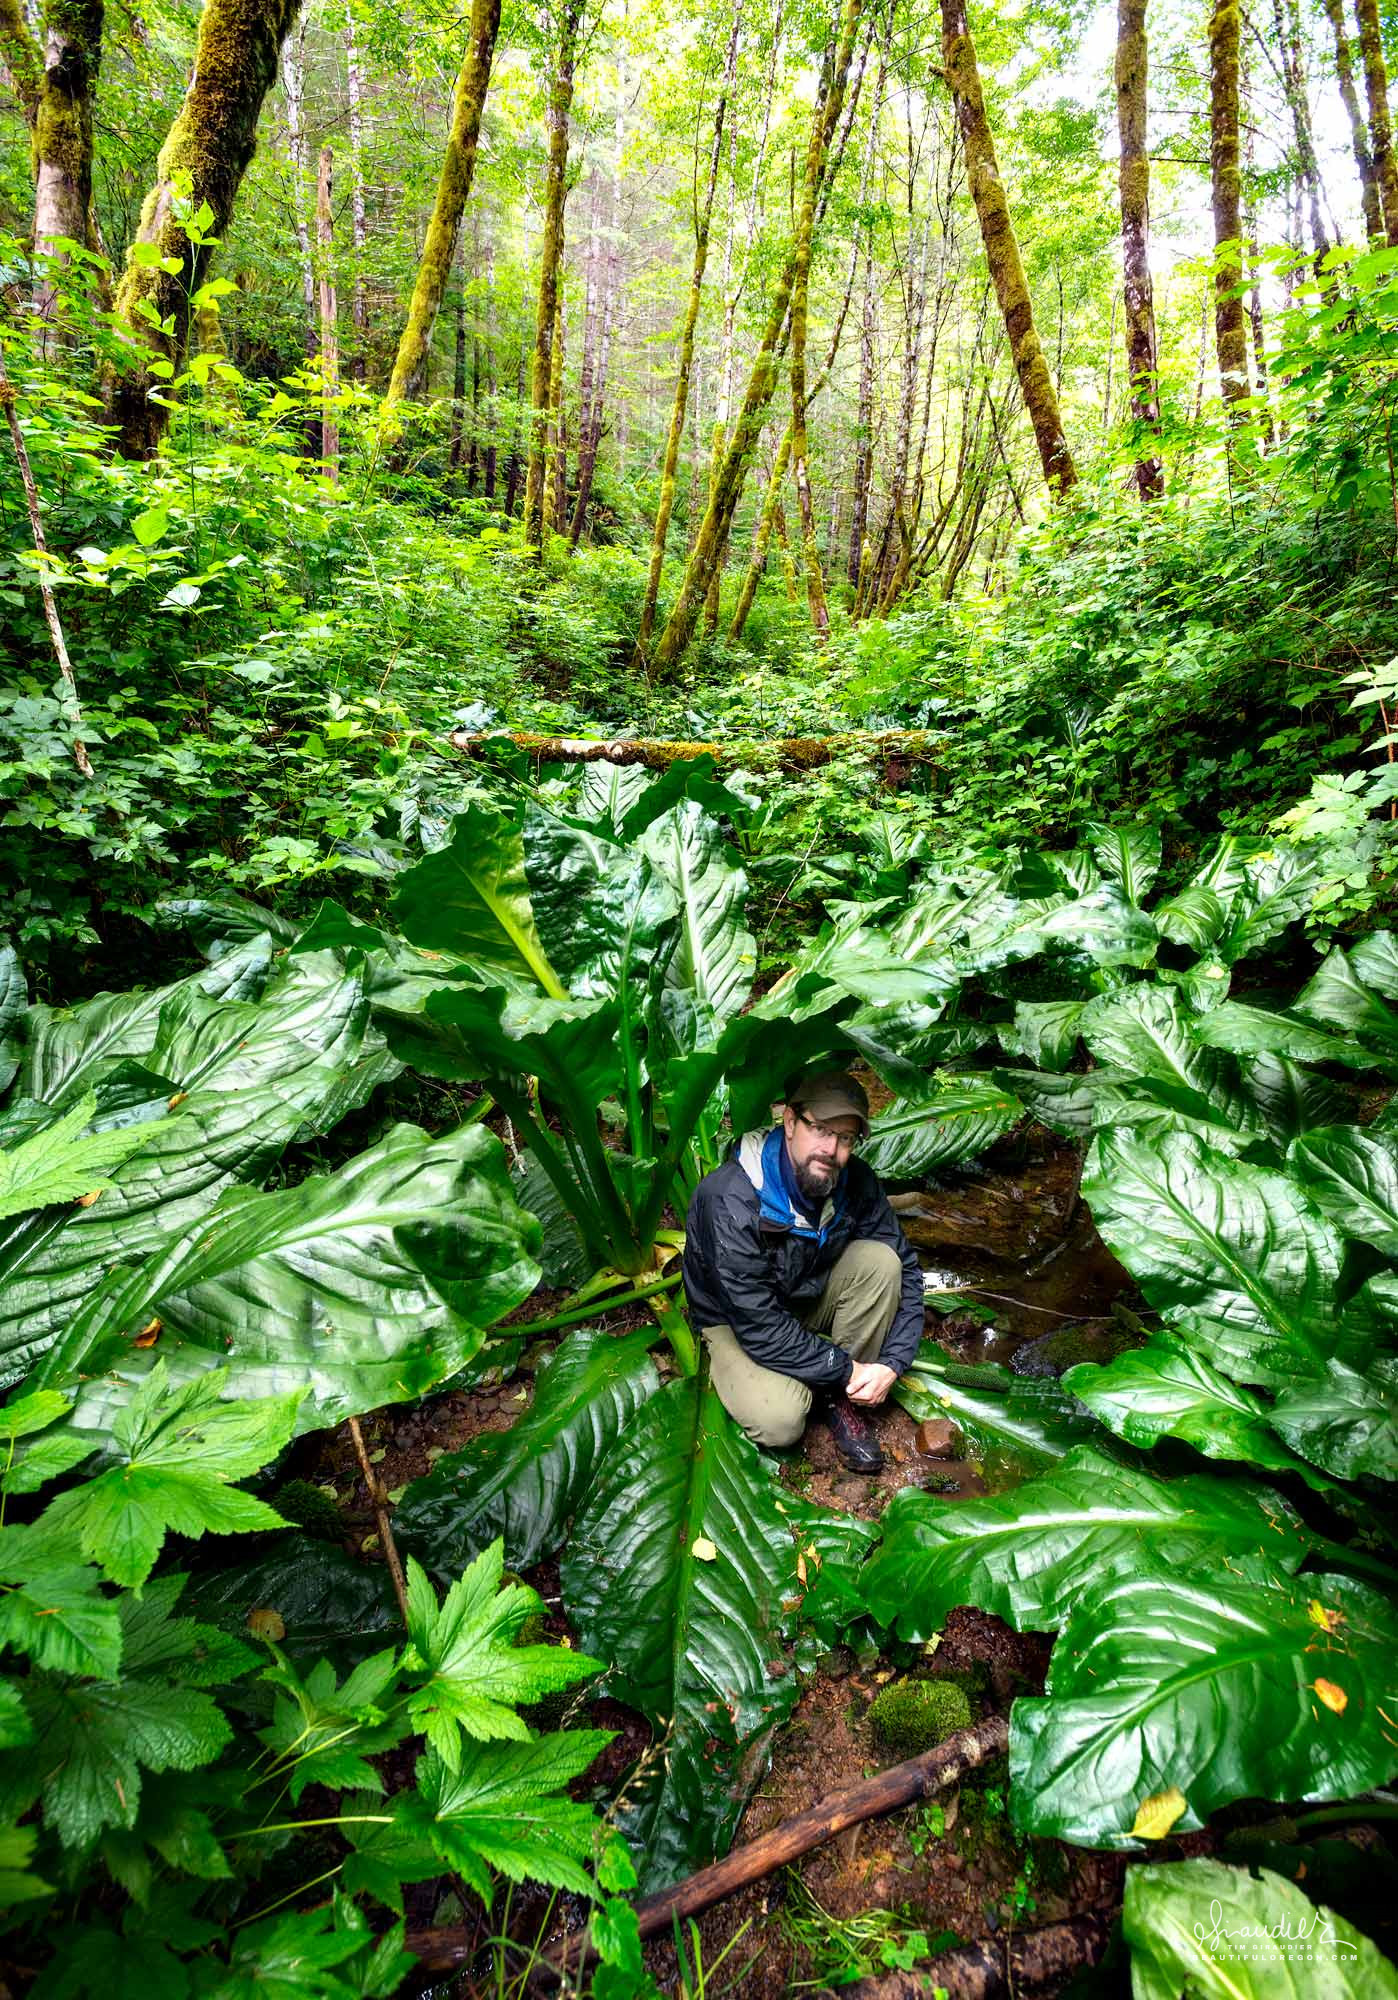 Western Skunk Cabbage (Lysichiton americanus) with five foot leaves are thriving in a stream gully. Elliott State Forest, Oregon Coast Range